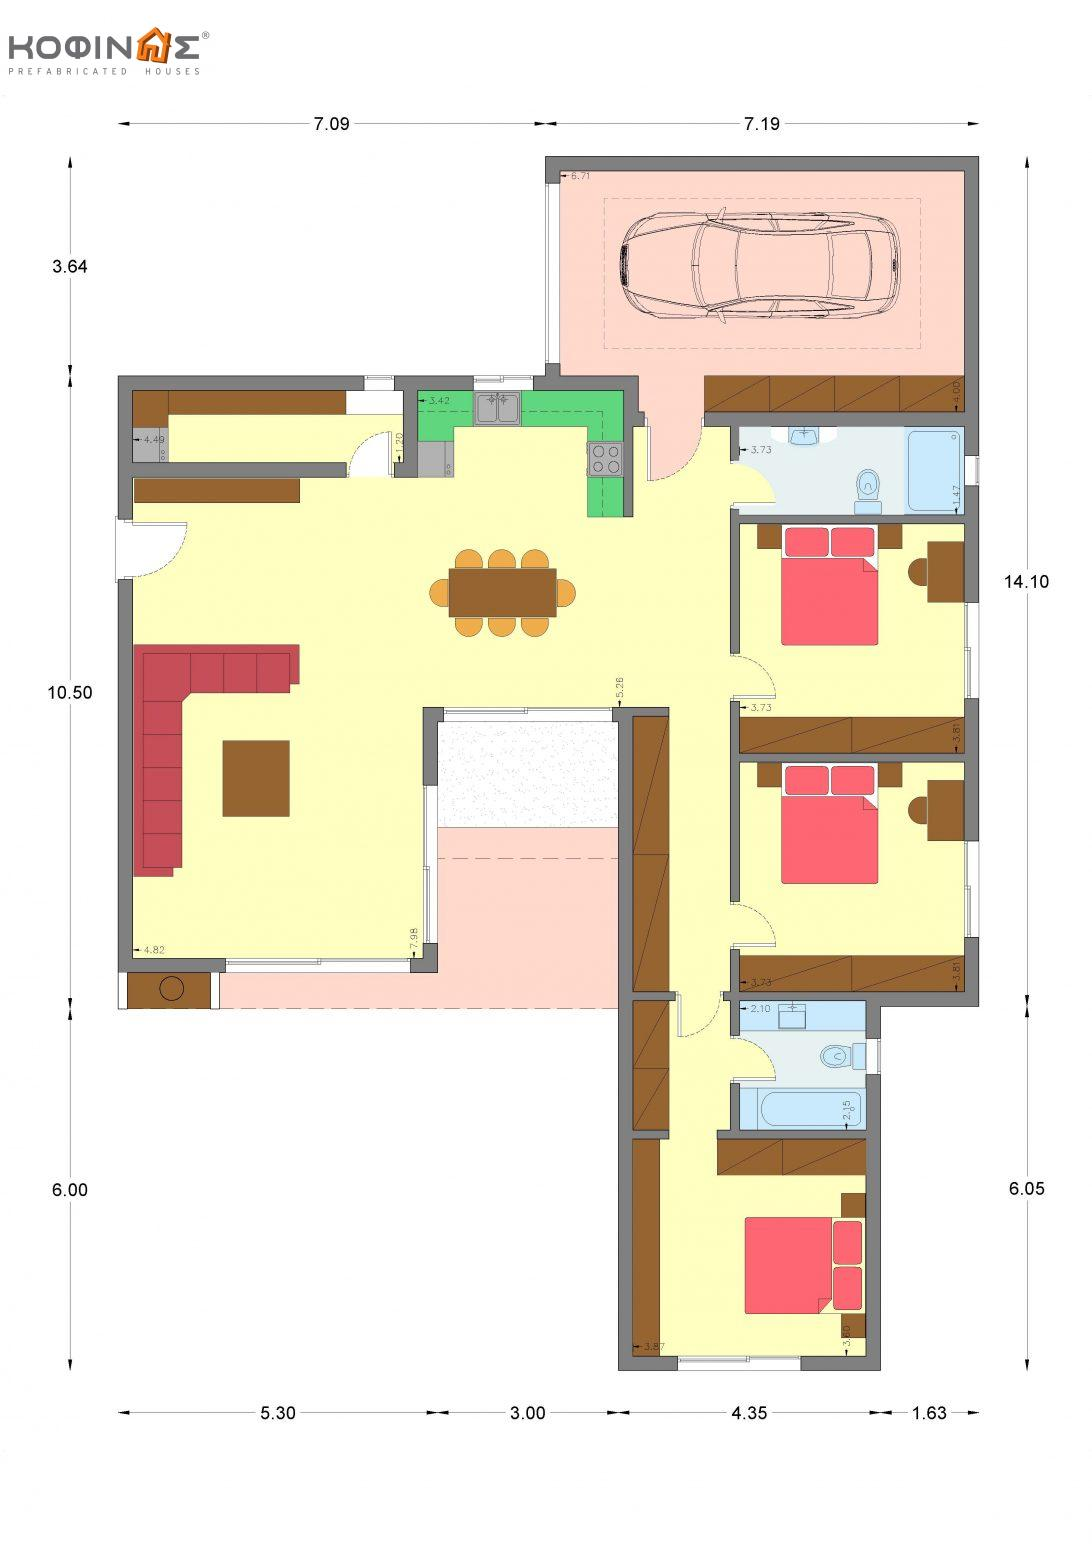 1-story house I-154a, total surface of 154,20 m²